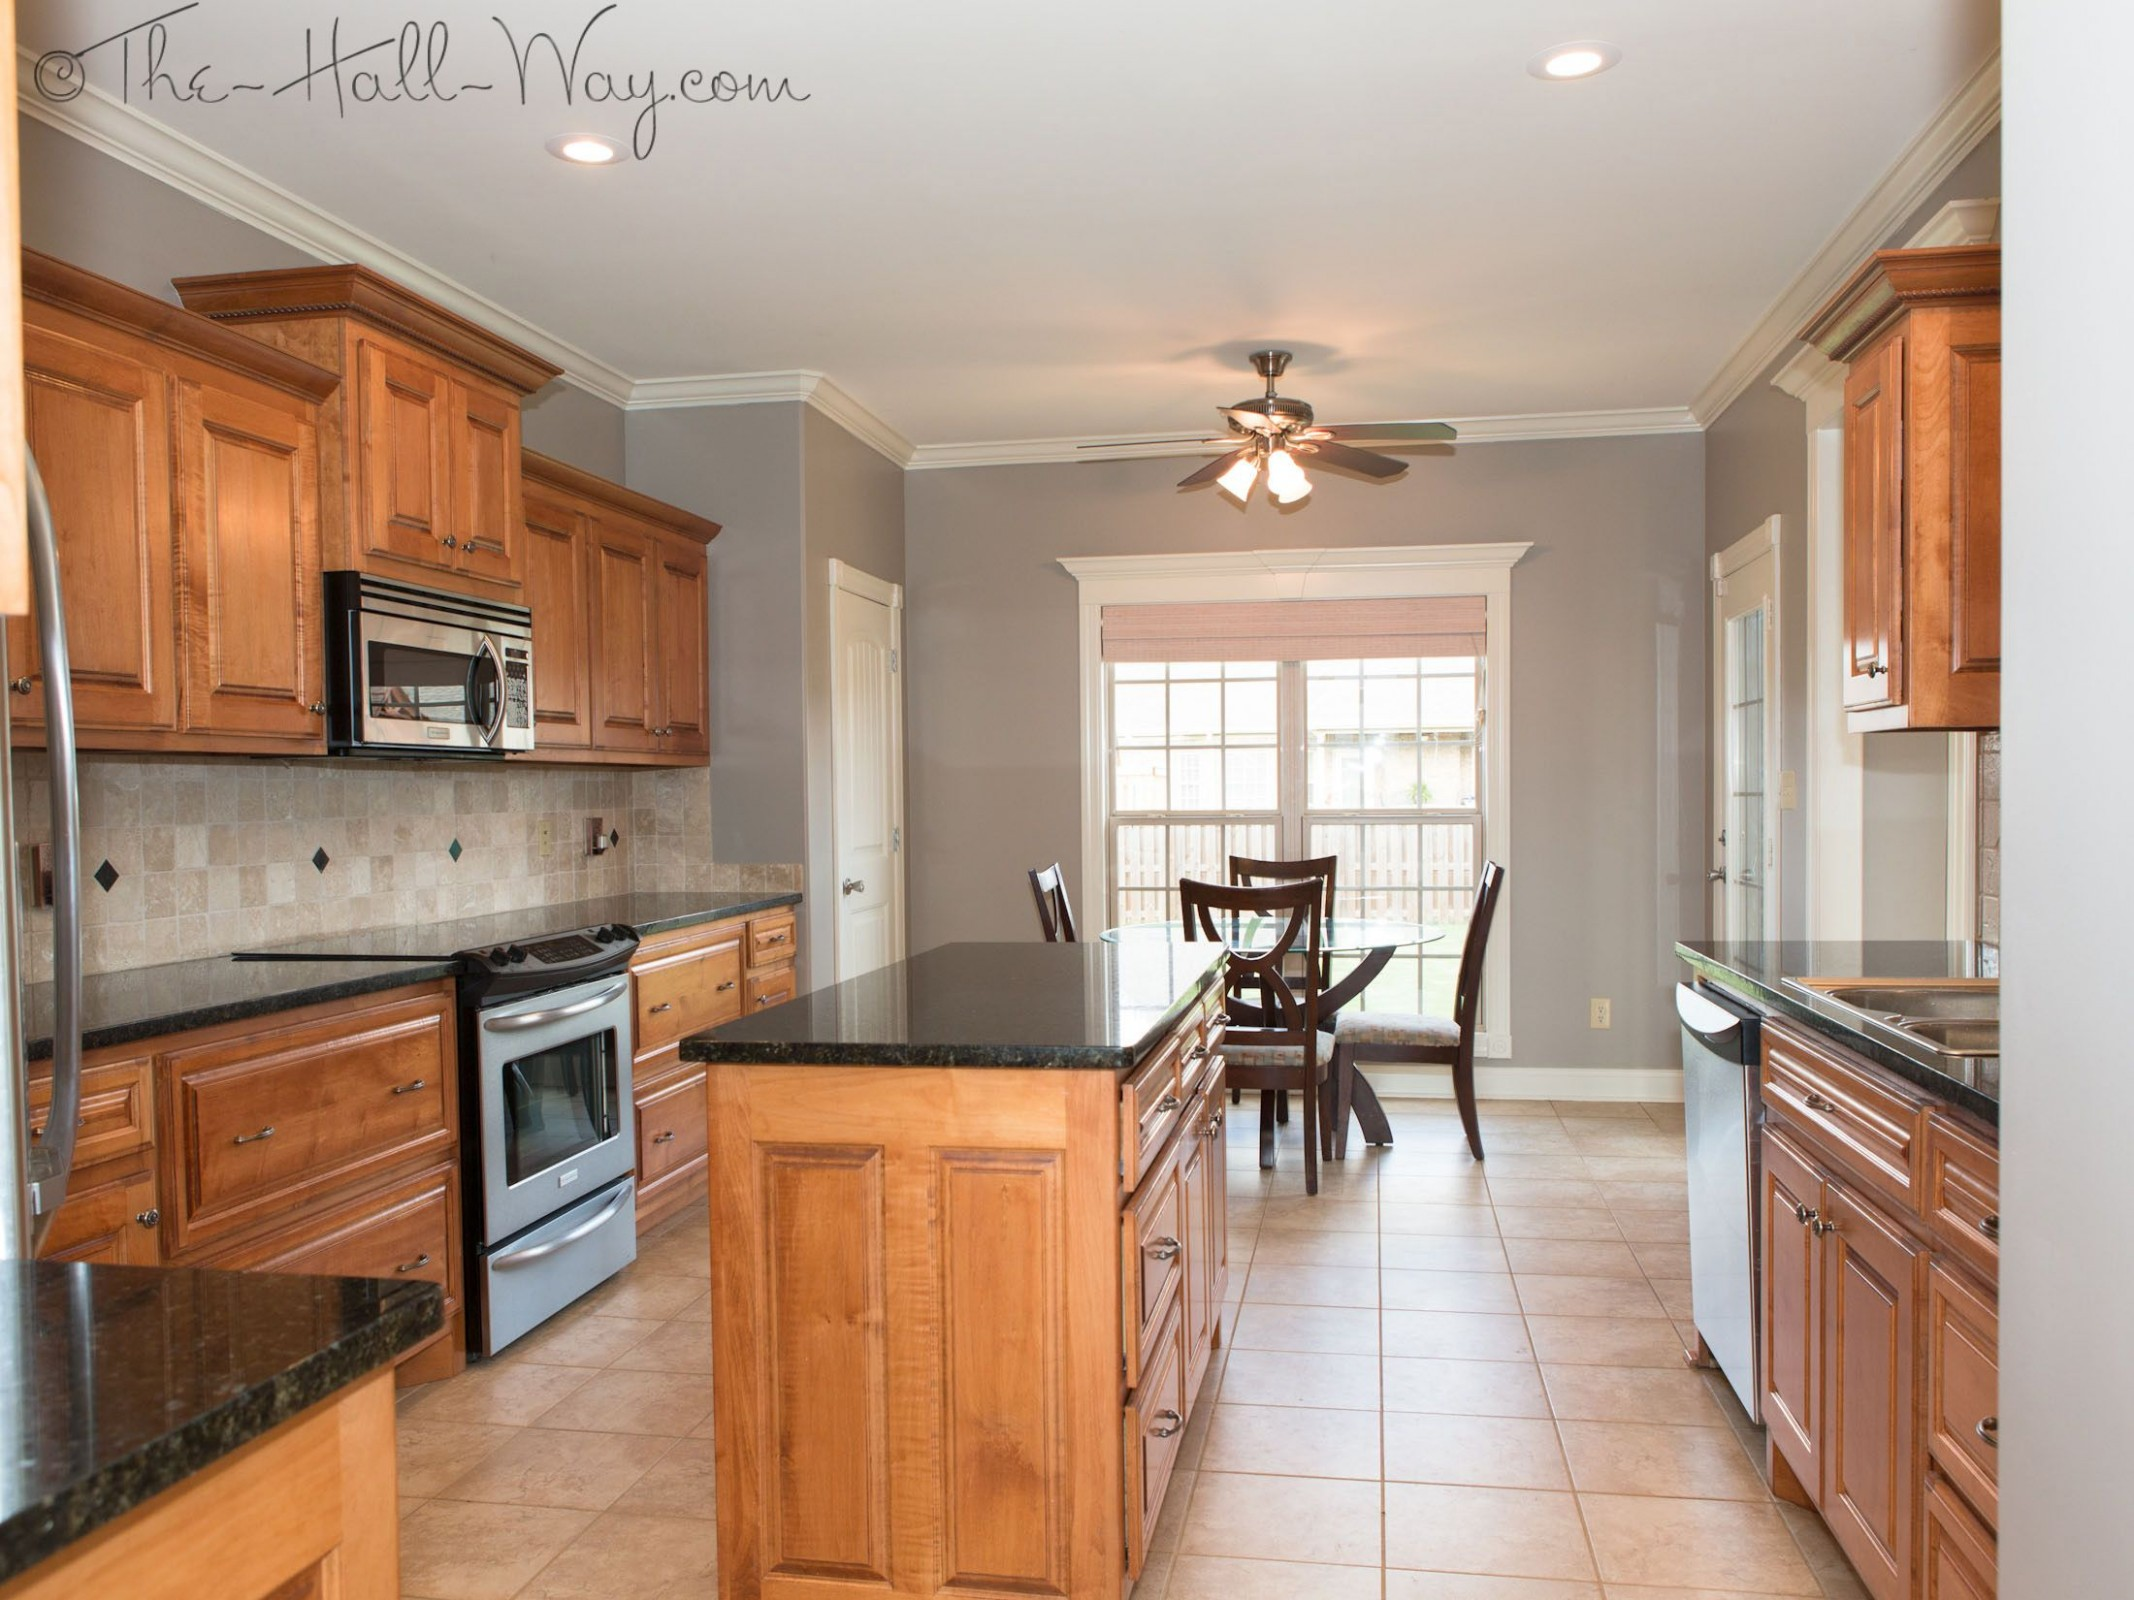 Summer Tour Of Homes  Kitchen wall colors, Honey oak cabinets  - Maple Kitchen Cabinets And Taupe Walls